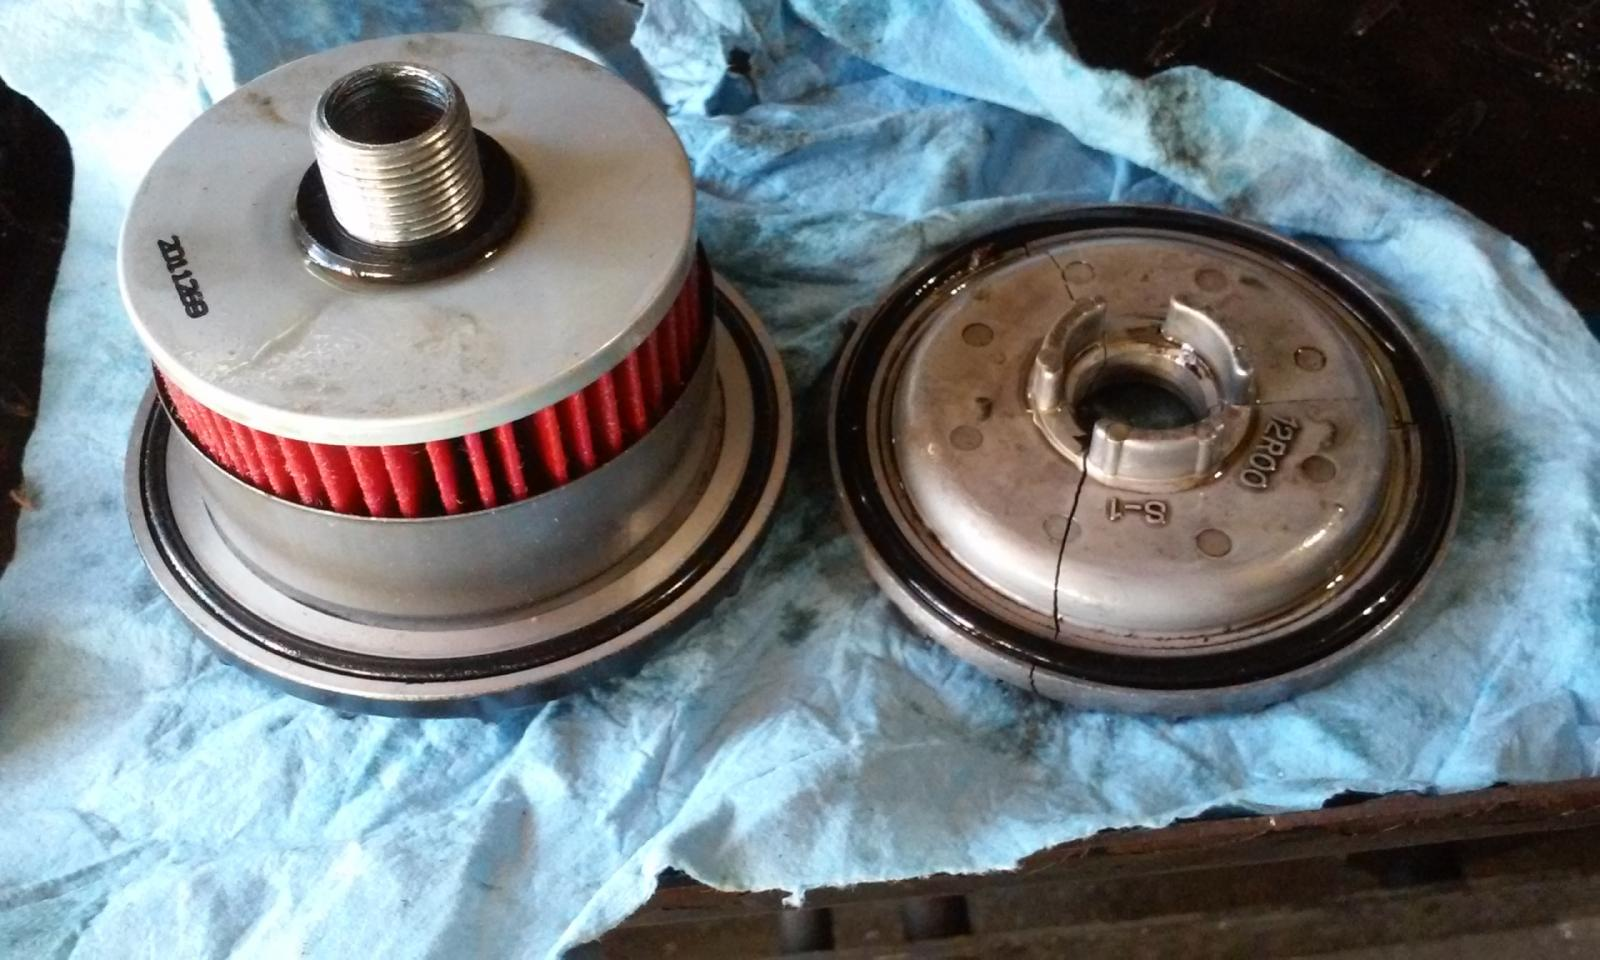 Hetip on '82-83 XS400 oil filter cover - try this if it breaks